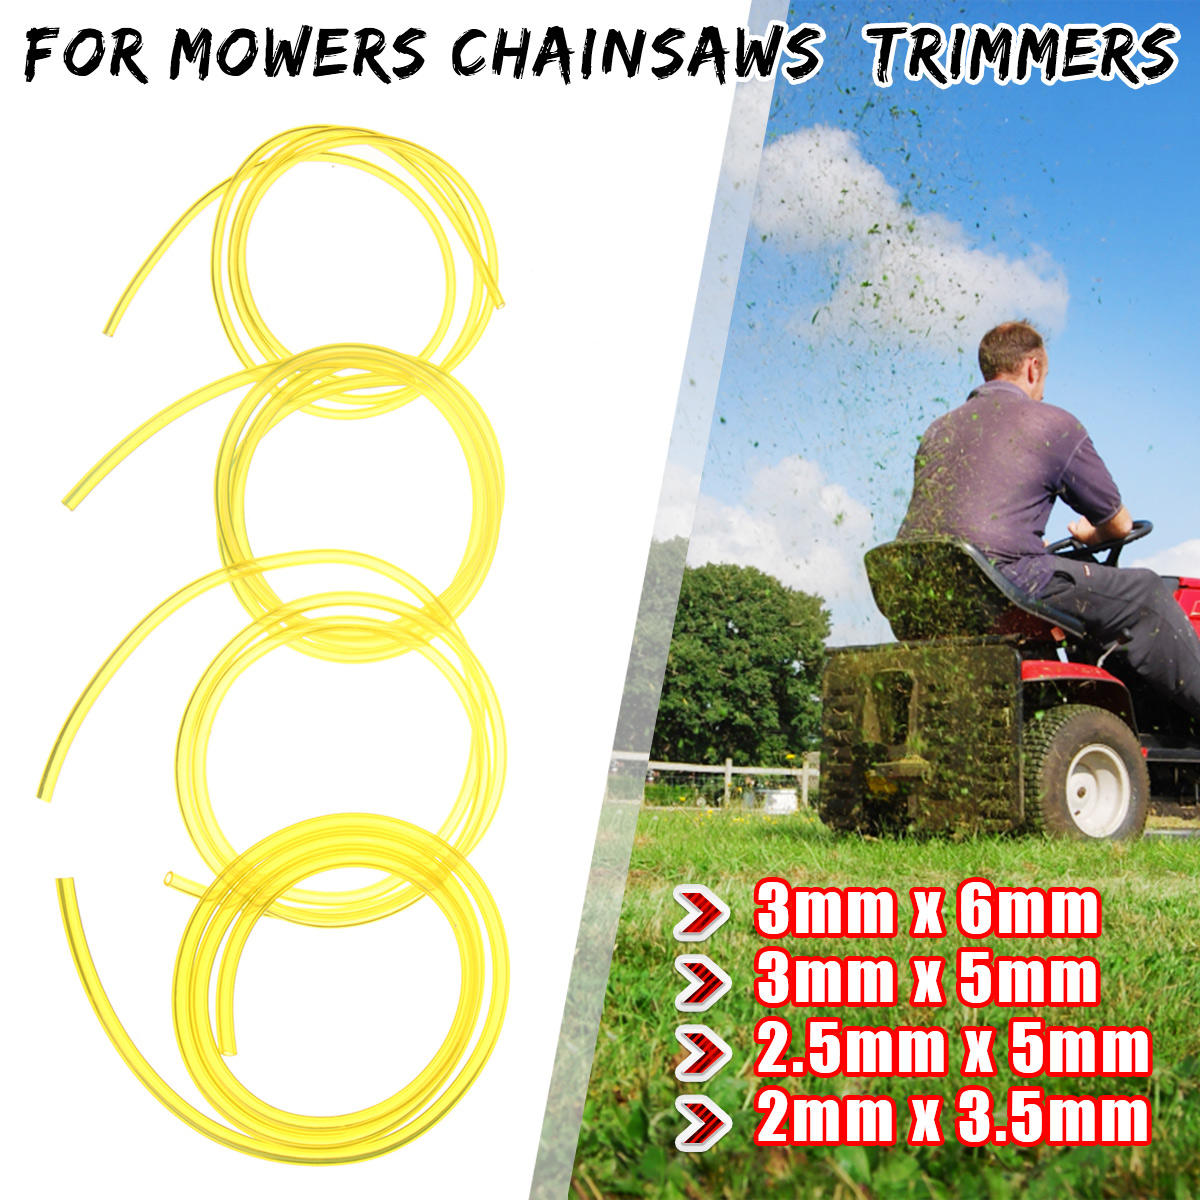 hight resolution of petrol fuel gas line pipe hose fuel filter mower strimmer chainsaw blower strimmer parts accessories